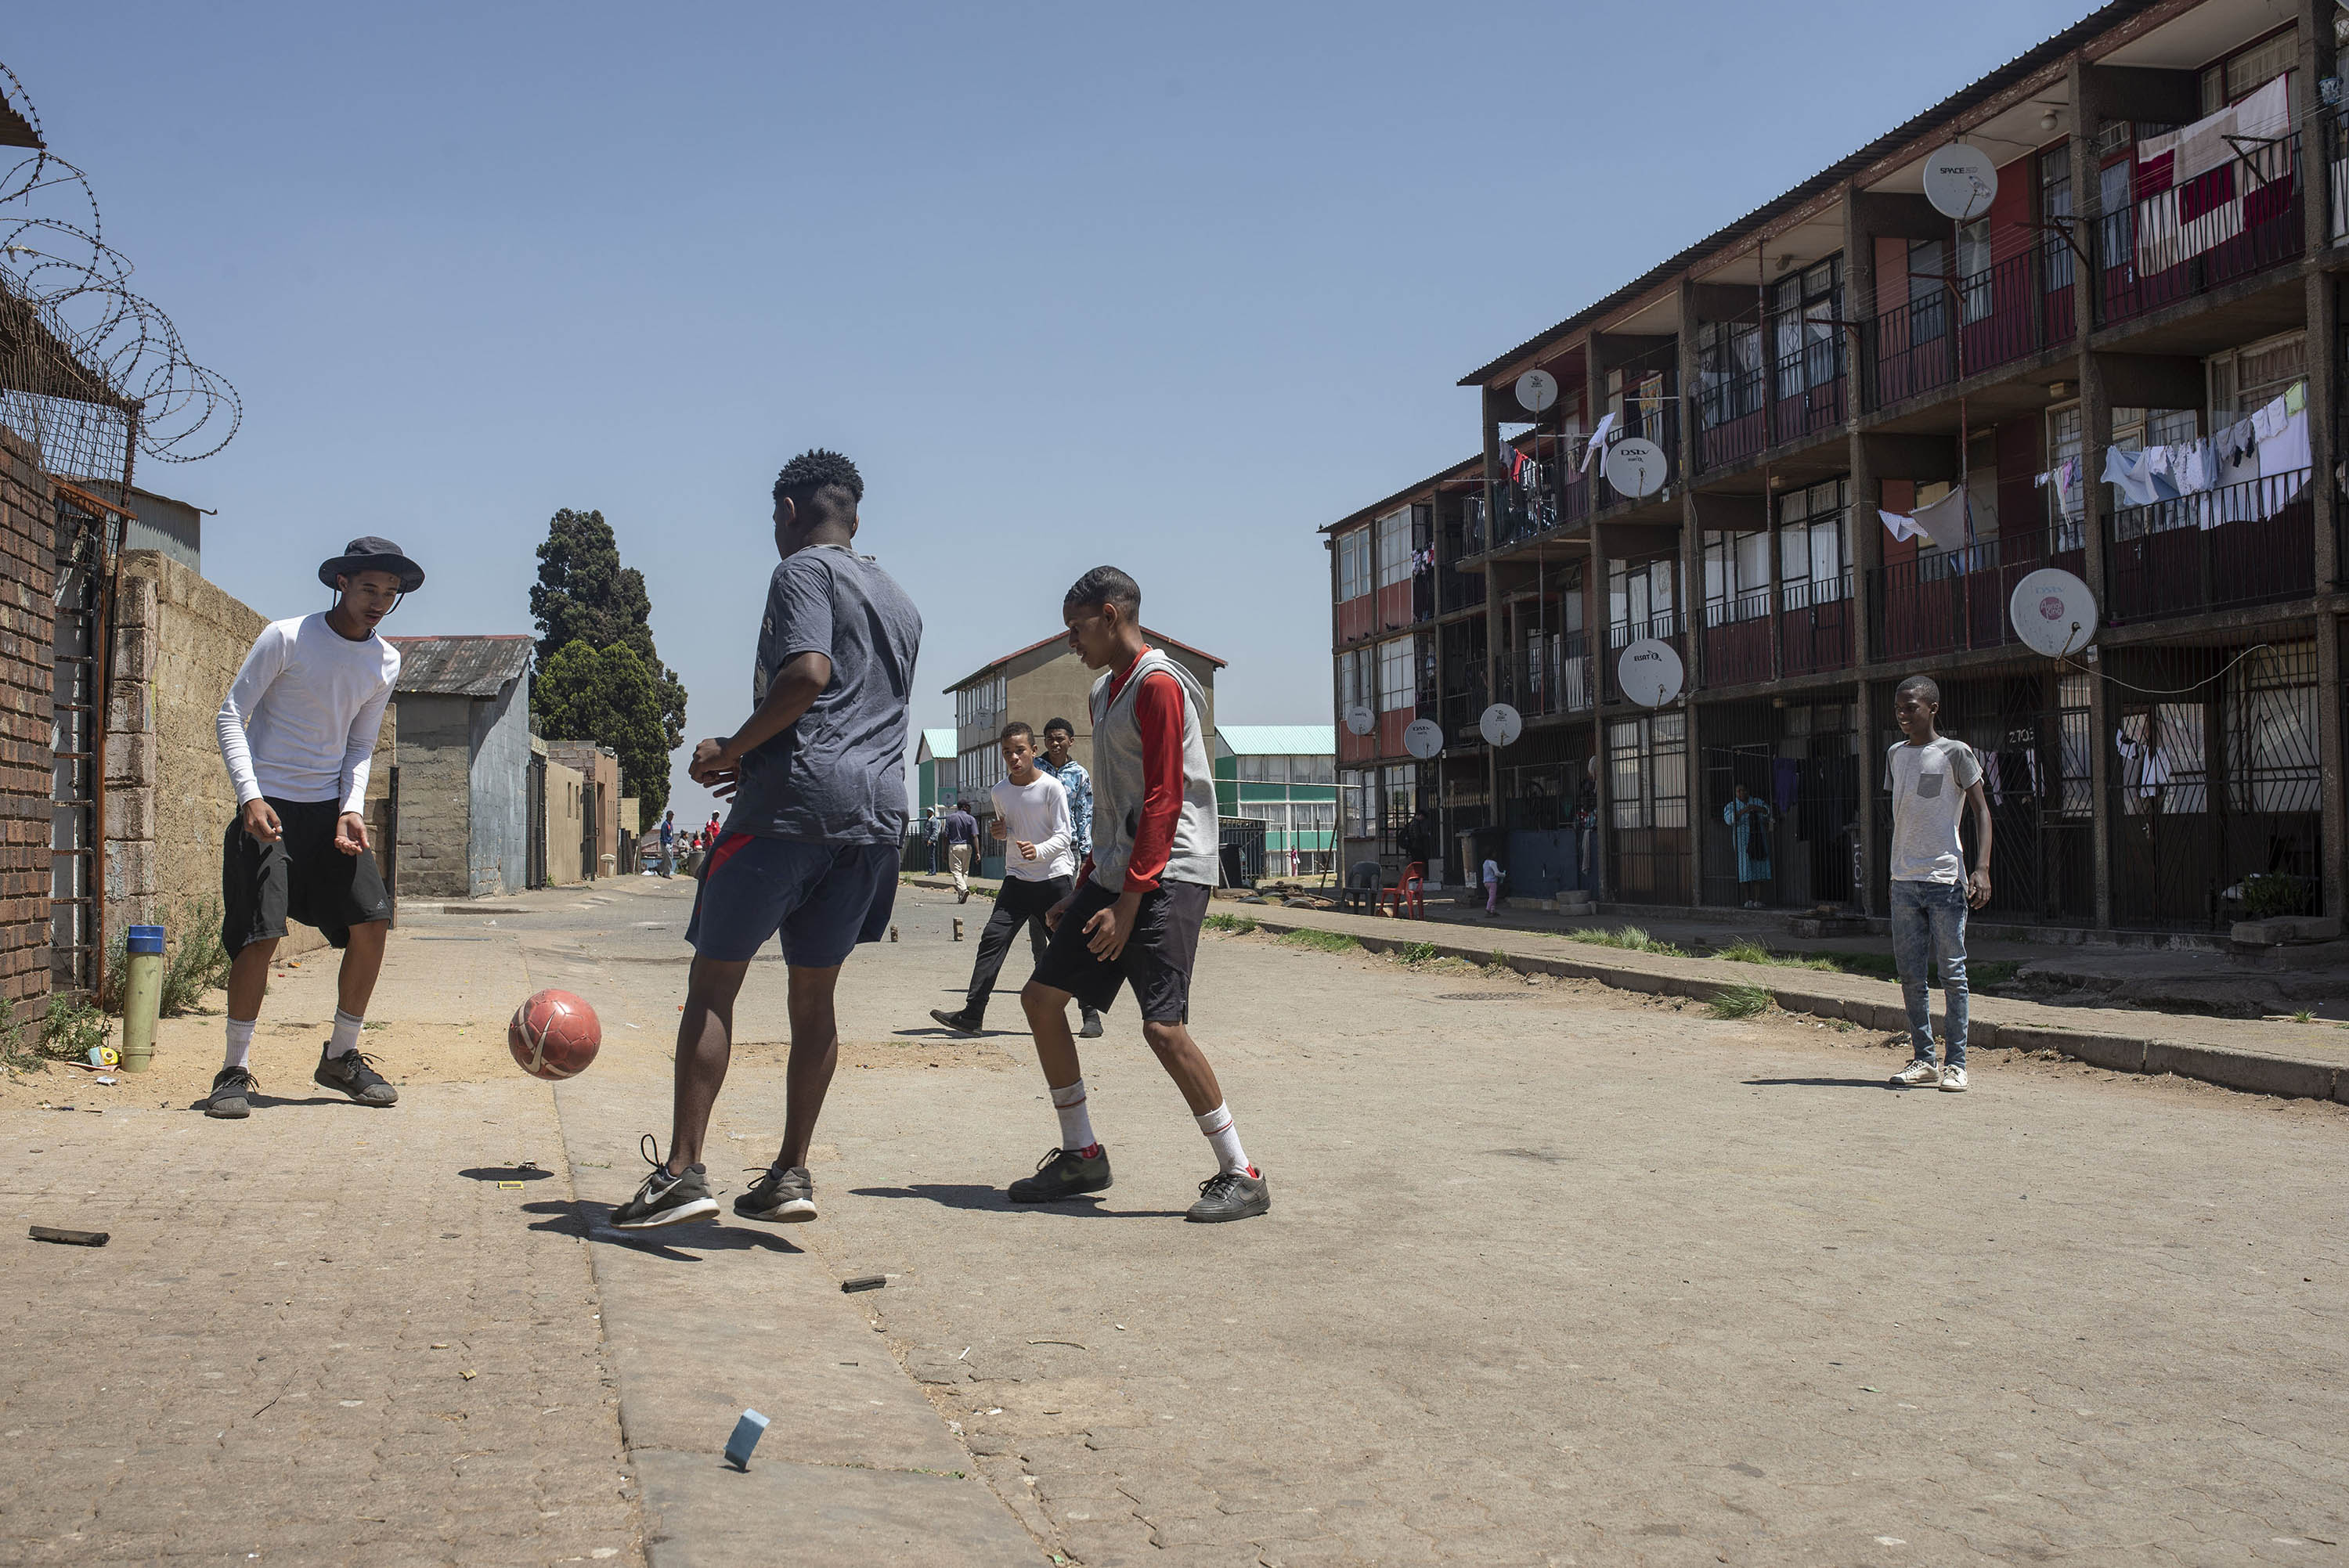 5 October 2018: Youngsters playing football in the streets of Westbury, Johannesburg, where Keagan Dolly grew up. (Photograph by Ihsaan Haffejee)